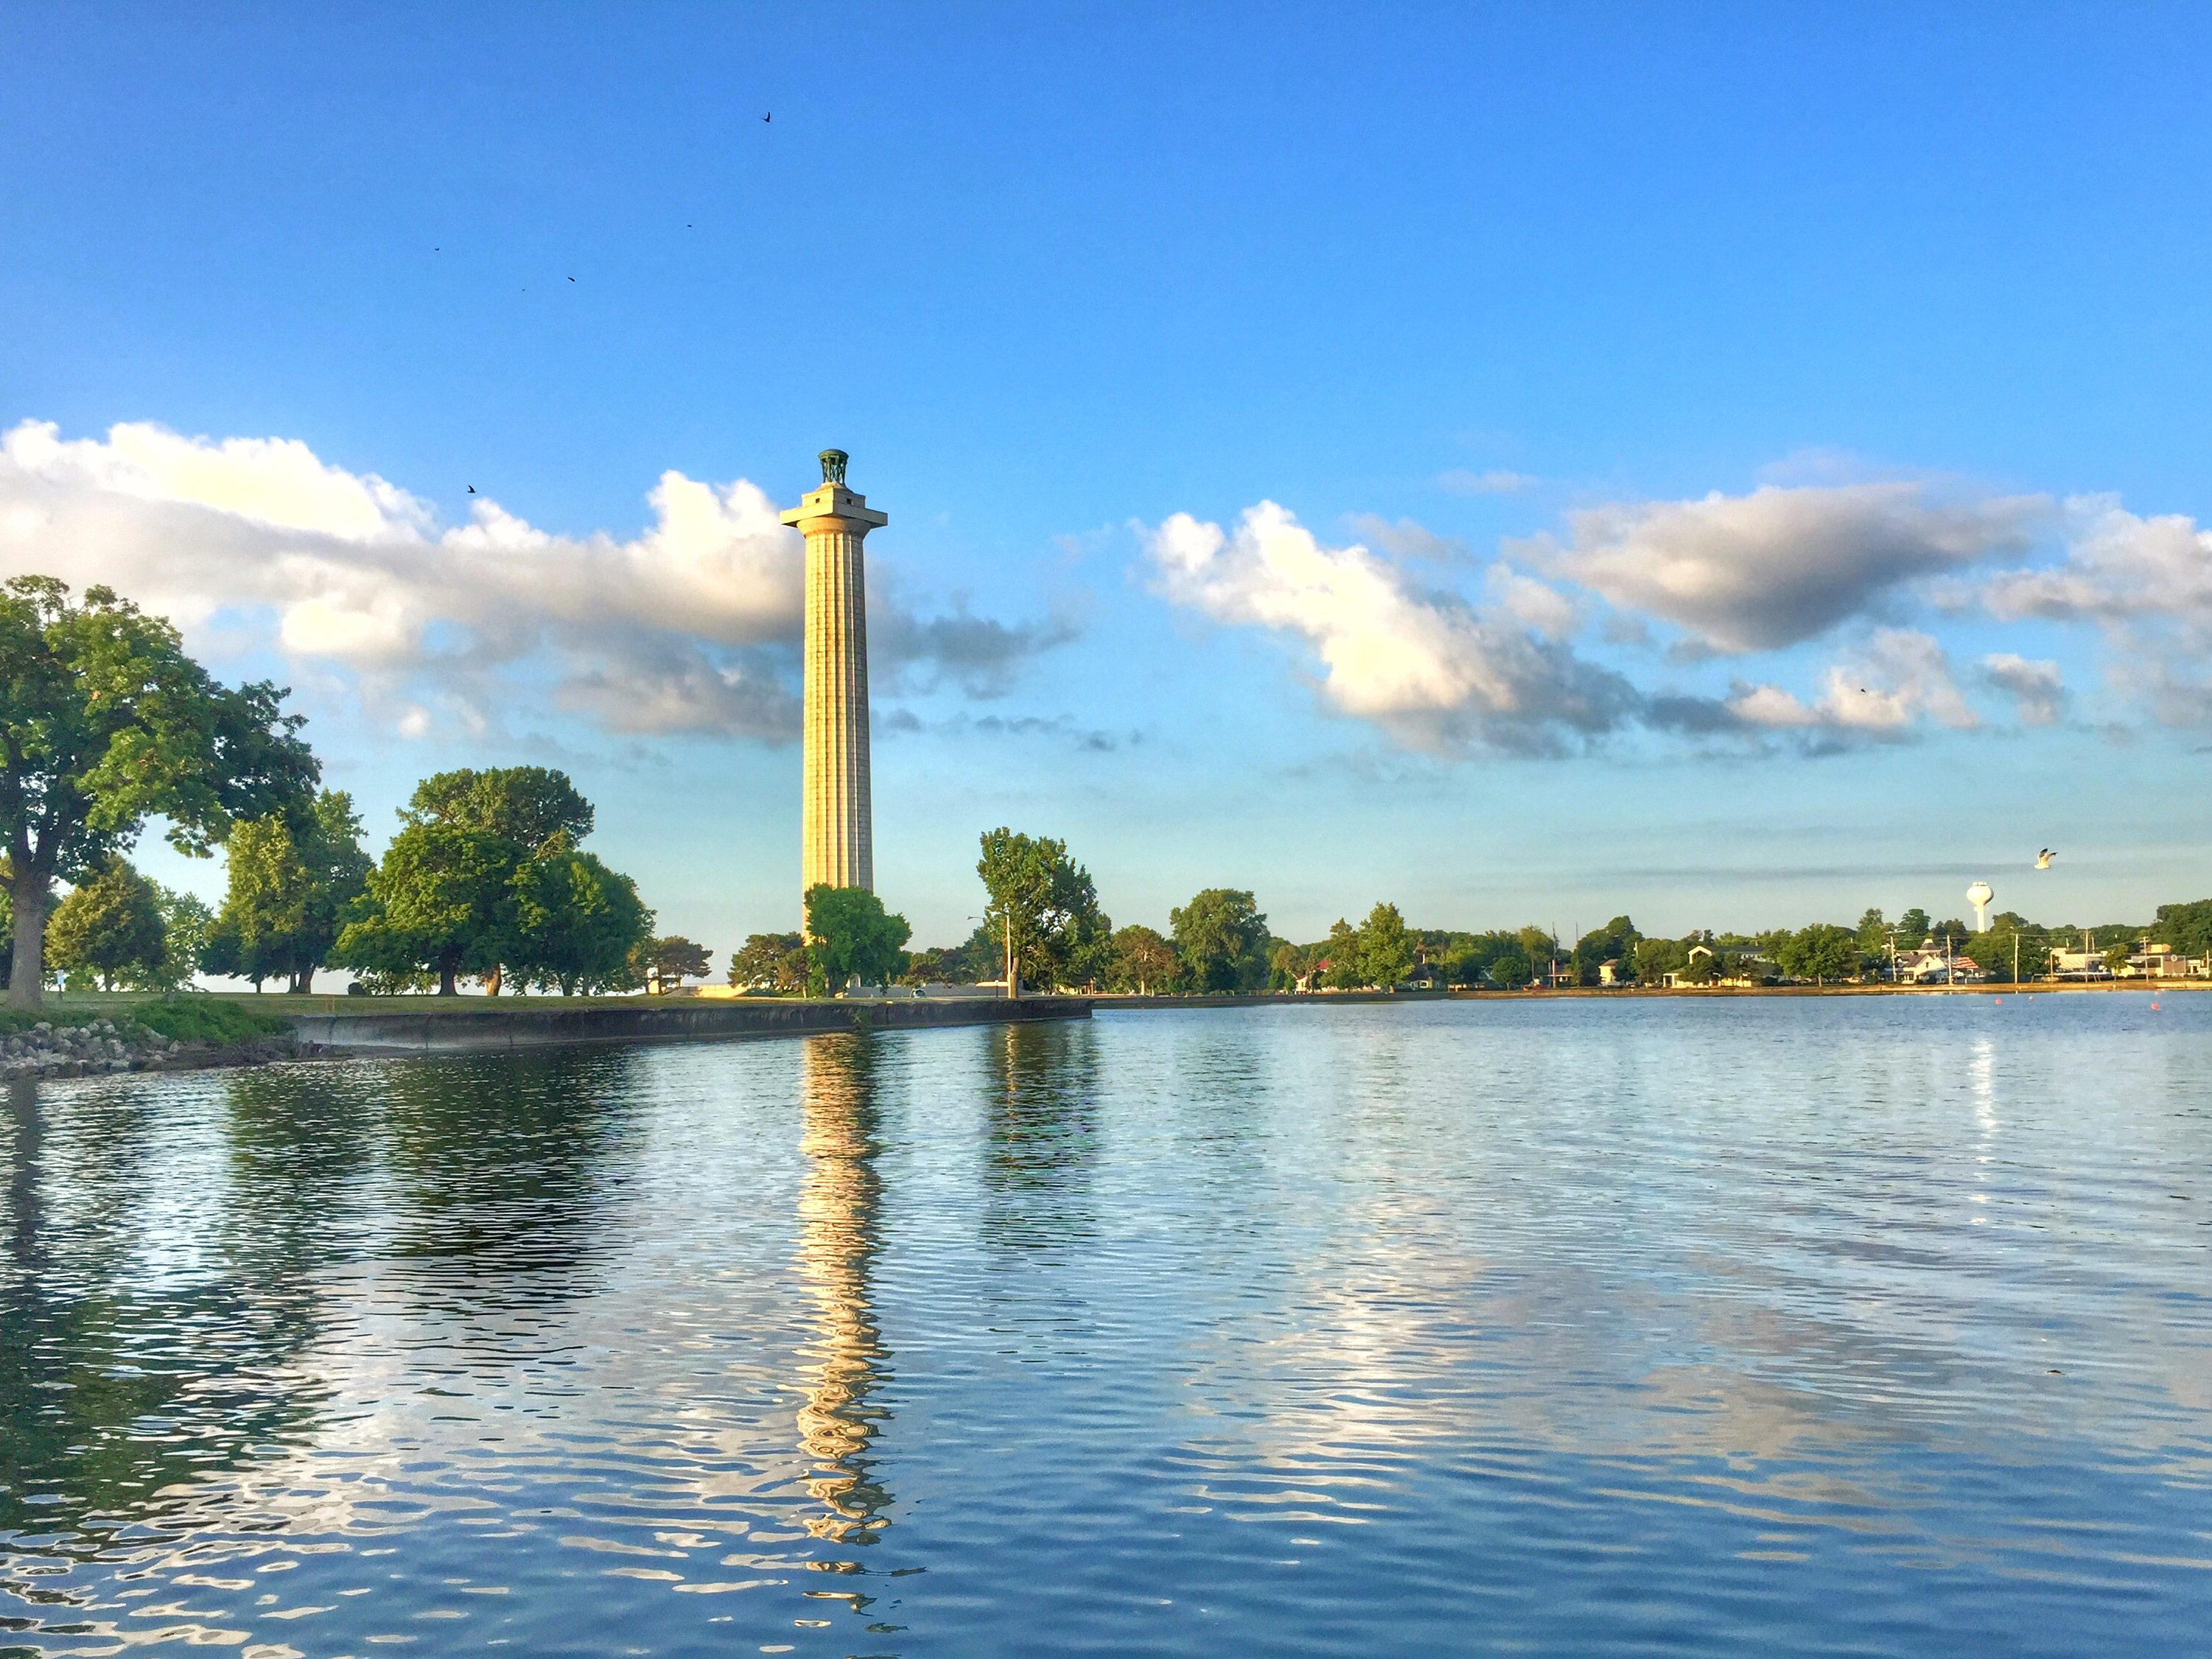 perrys-monument-put-in-bay